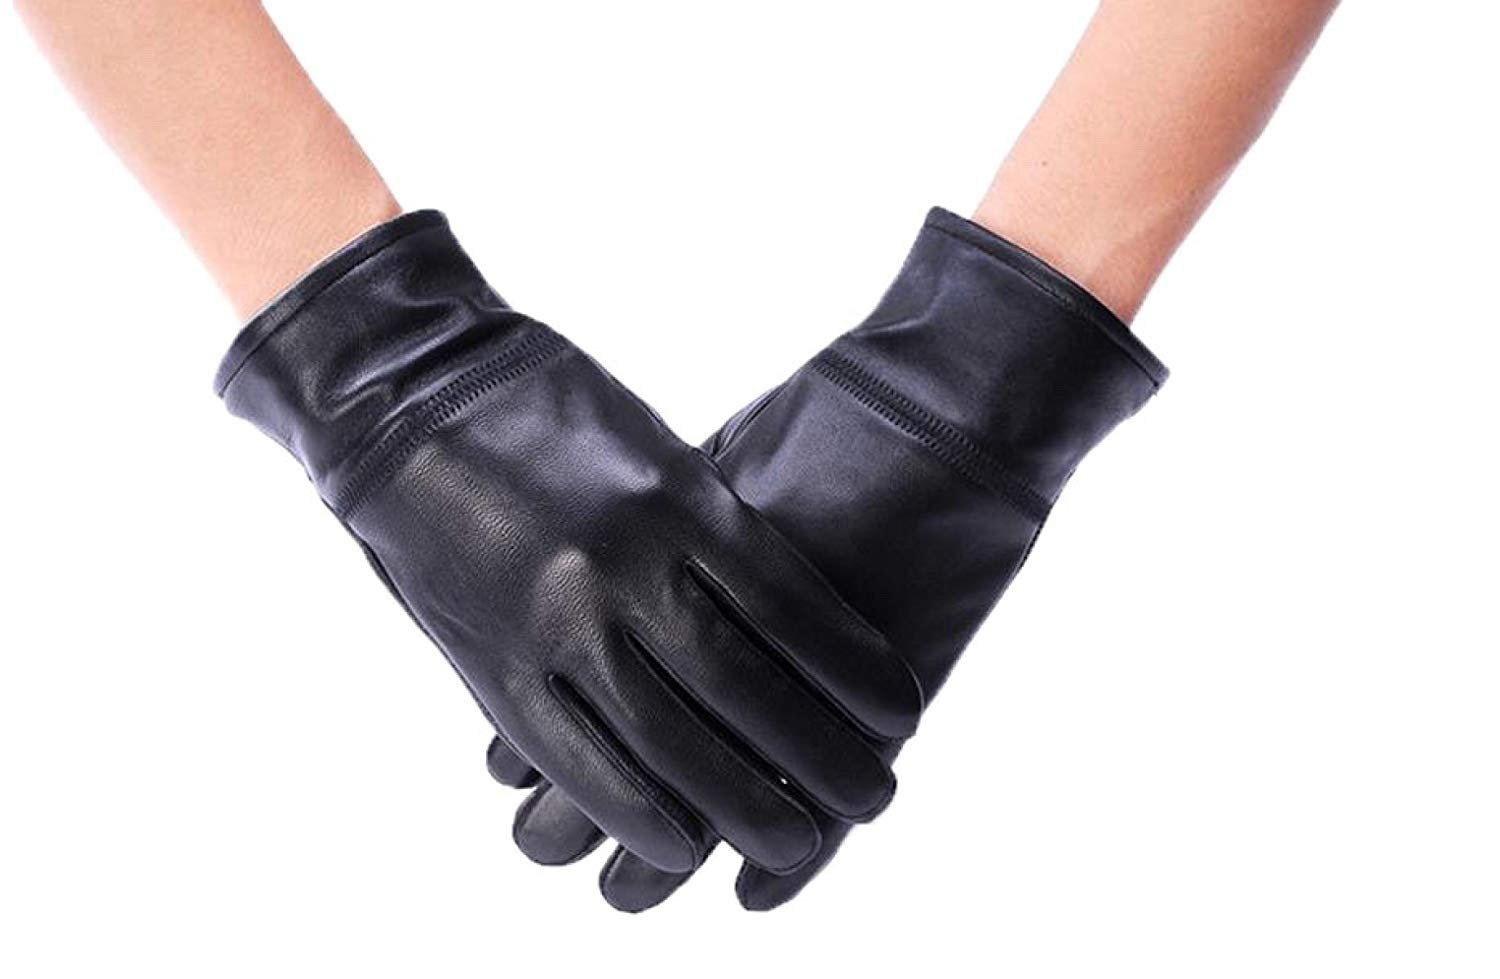 CWJ Gloves Ladies Ride Thicken Warm Autumn and Winter Men's Style,WomenBlack,Large by CWJ (Image #1)